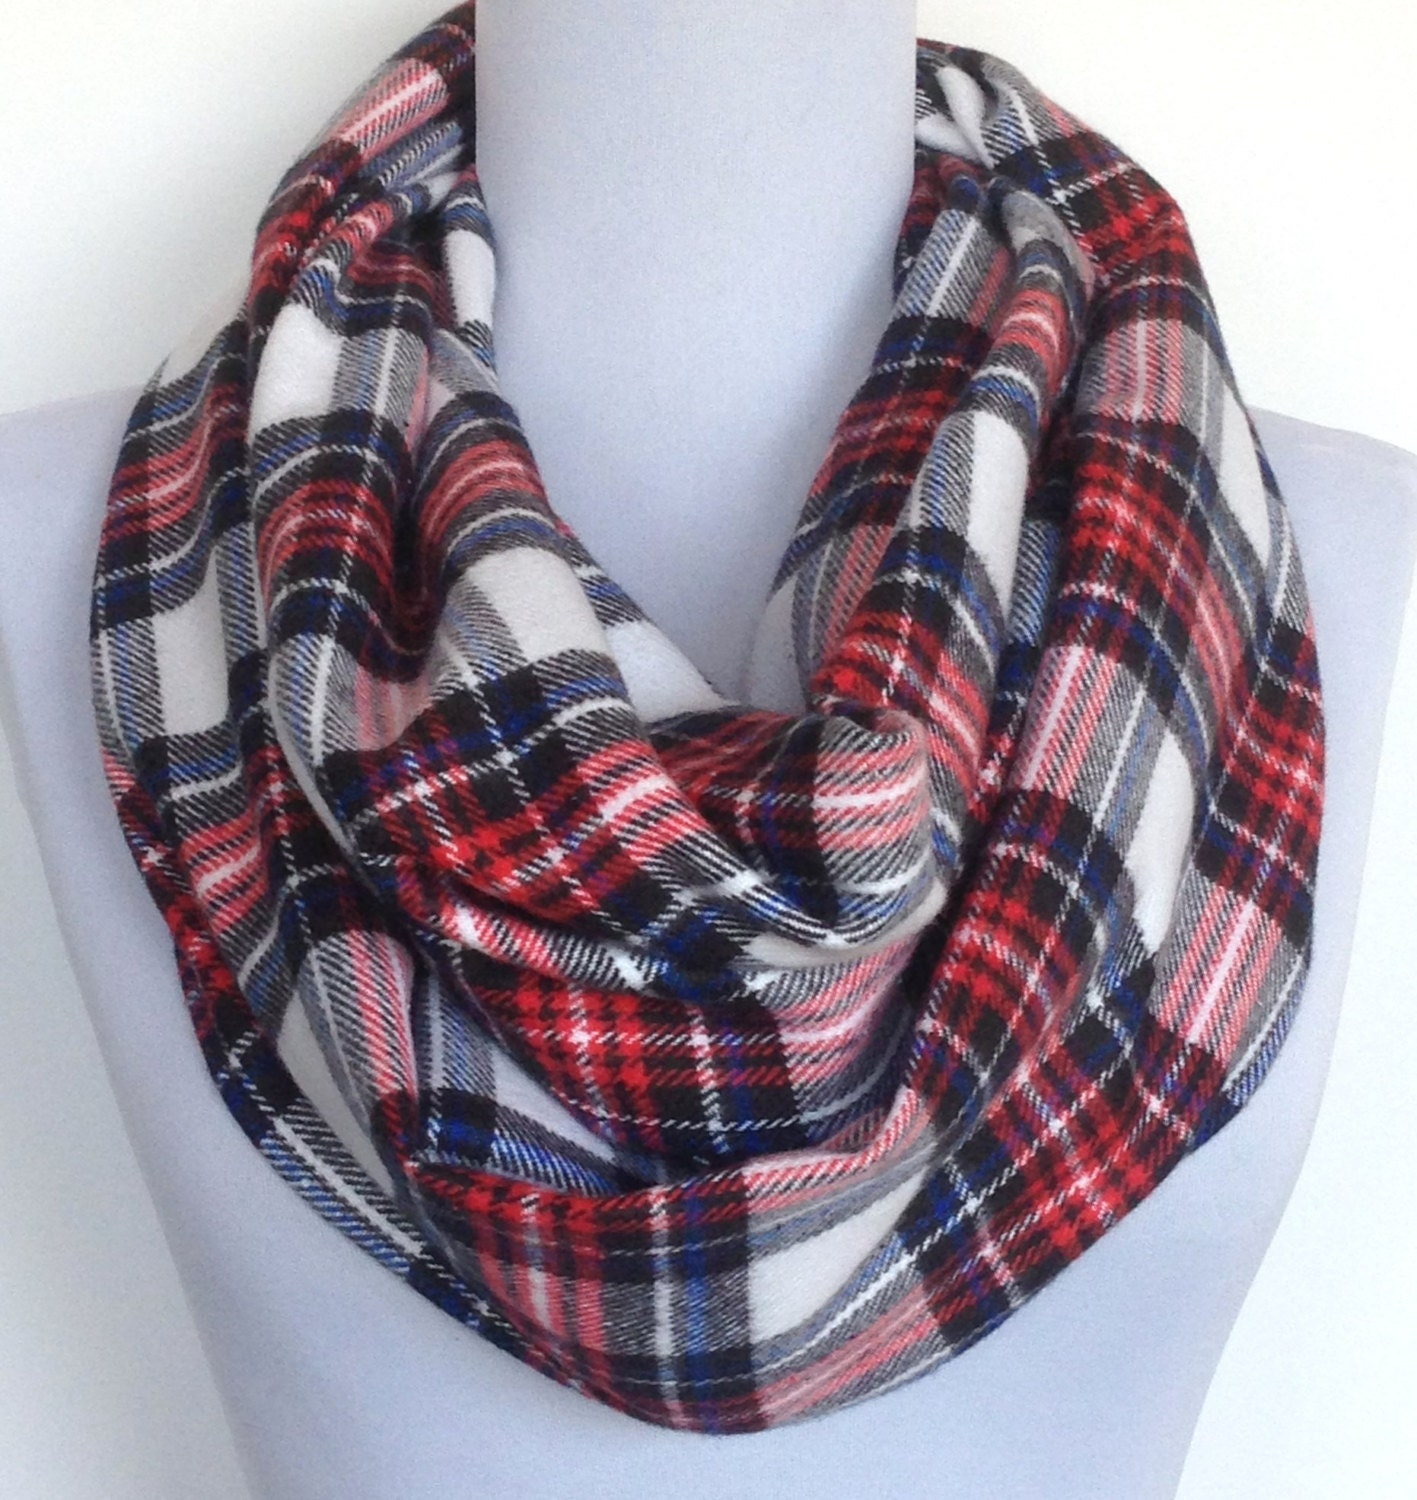 Infinity Scarf In Red White Blue And Black Tartan Plaid